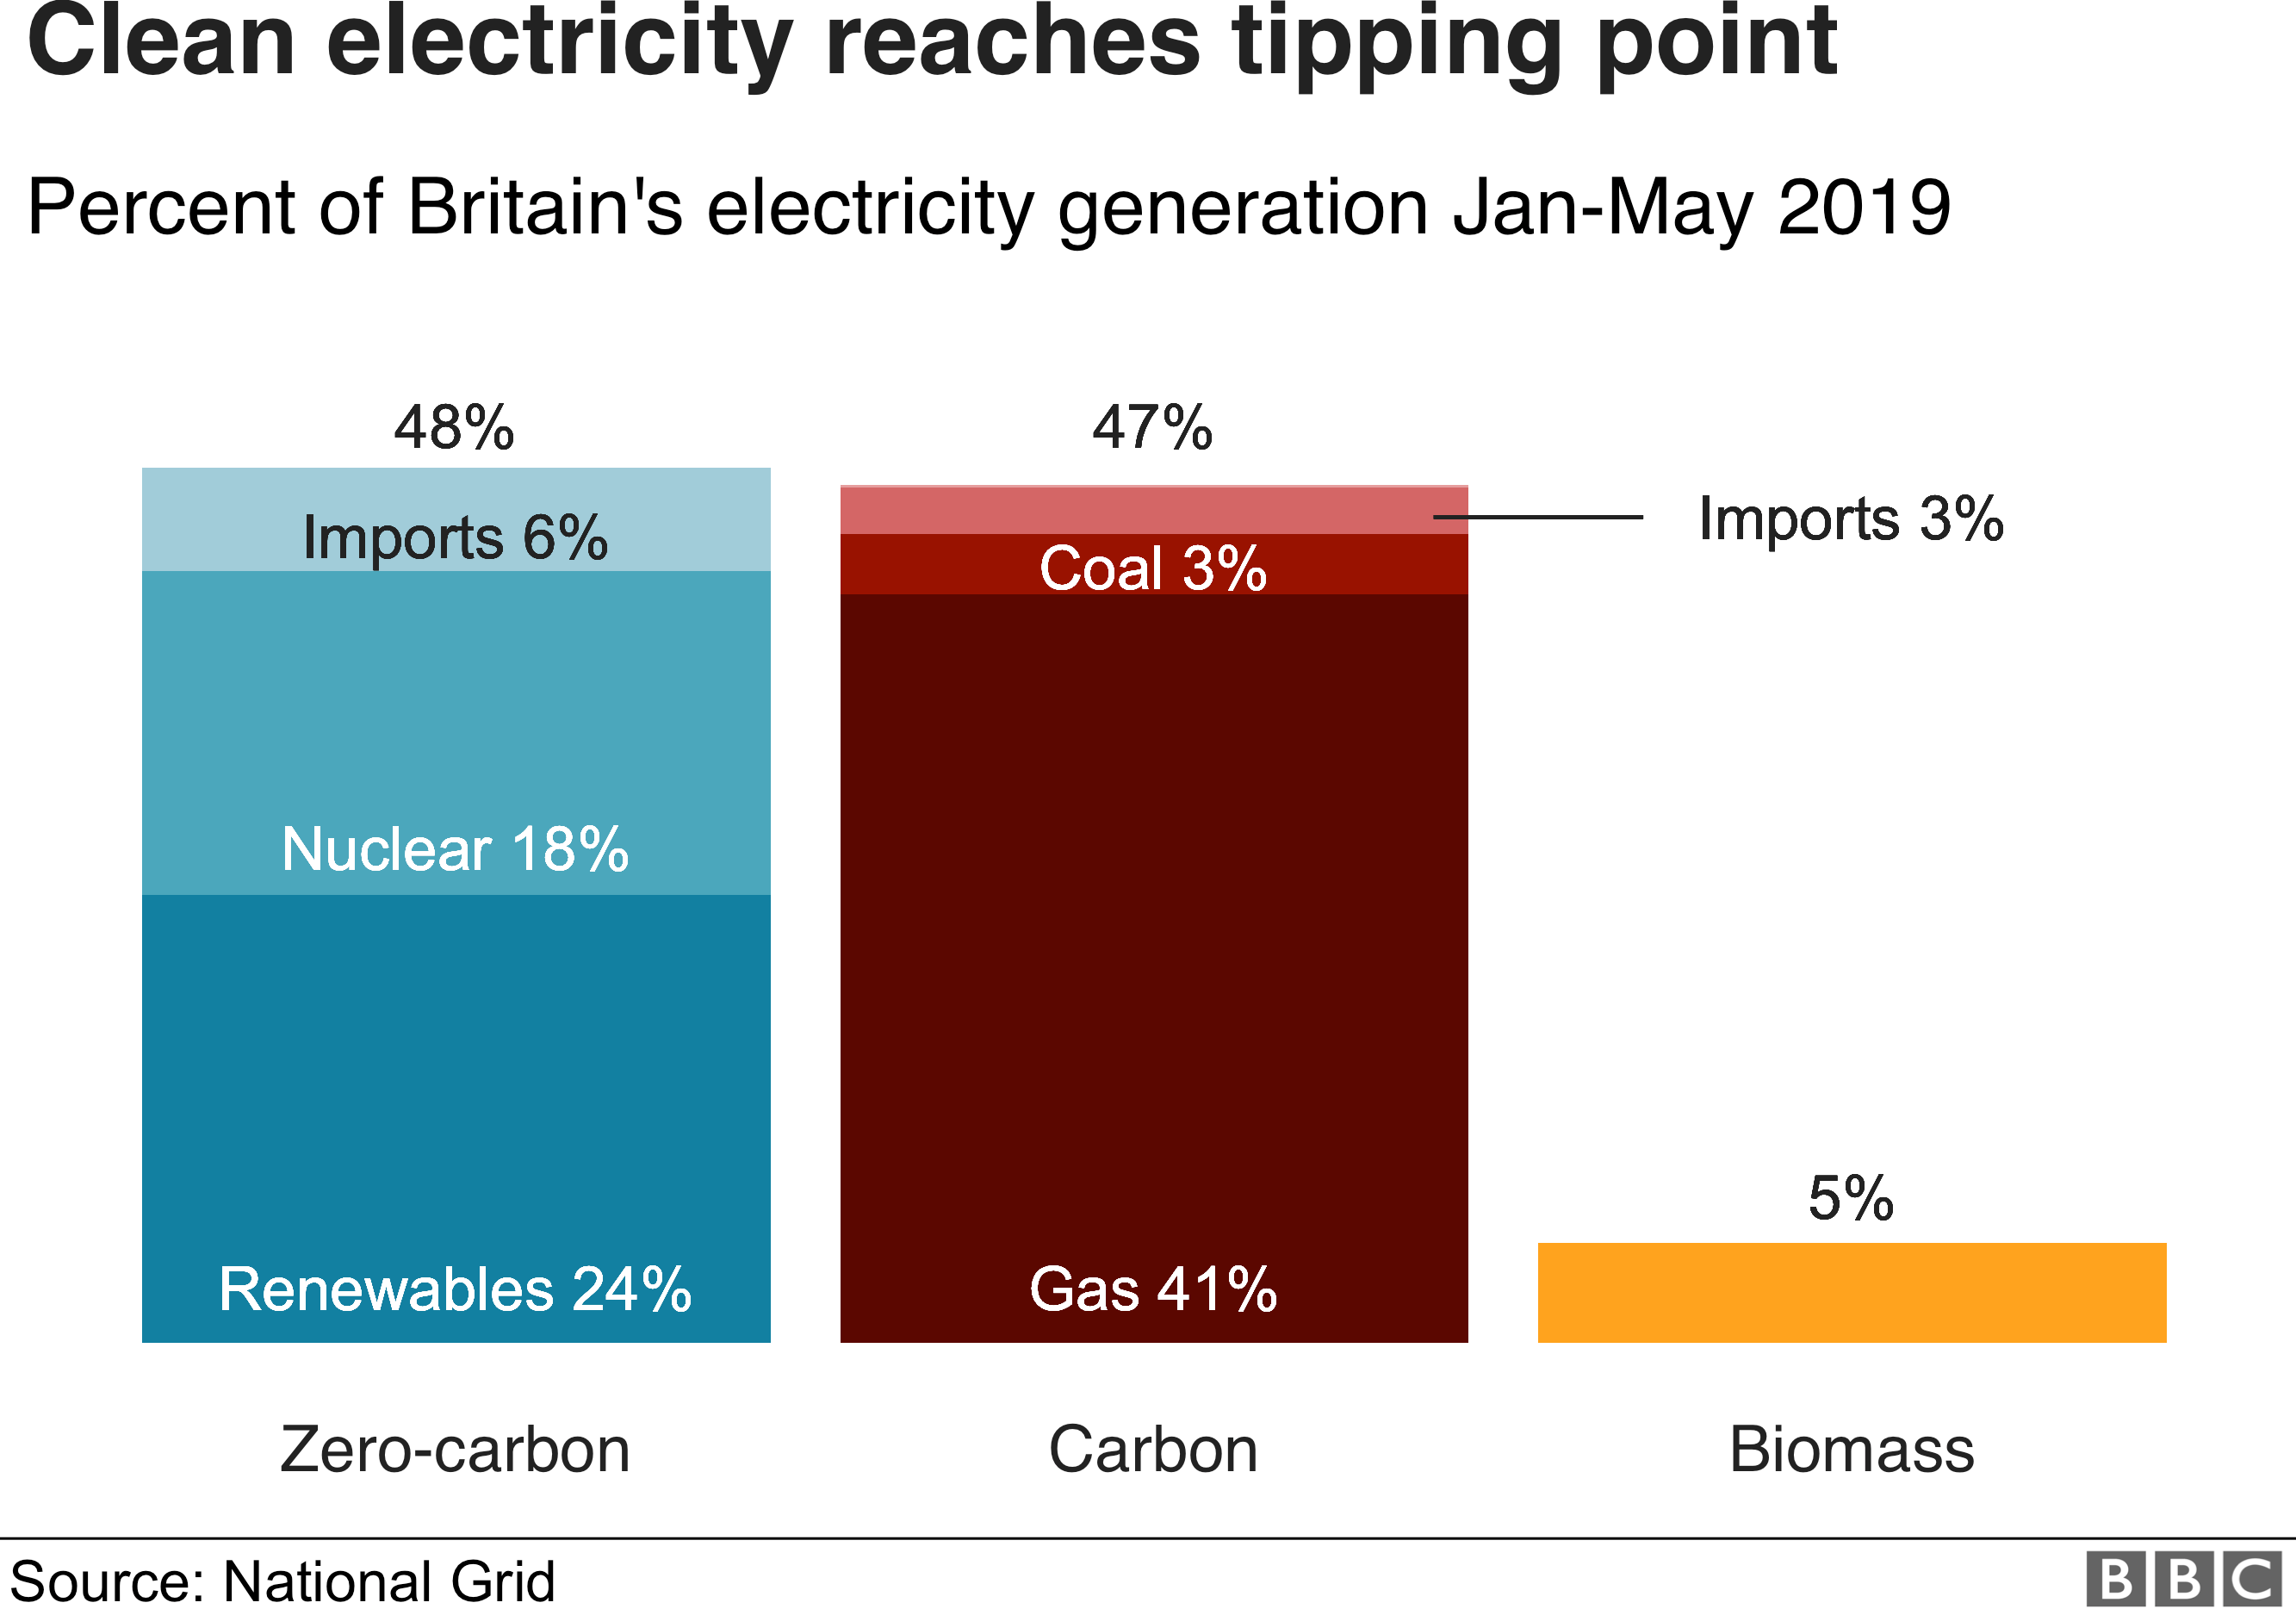 Clean electricity overtaking fossil fuels in Britain - BBC News